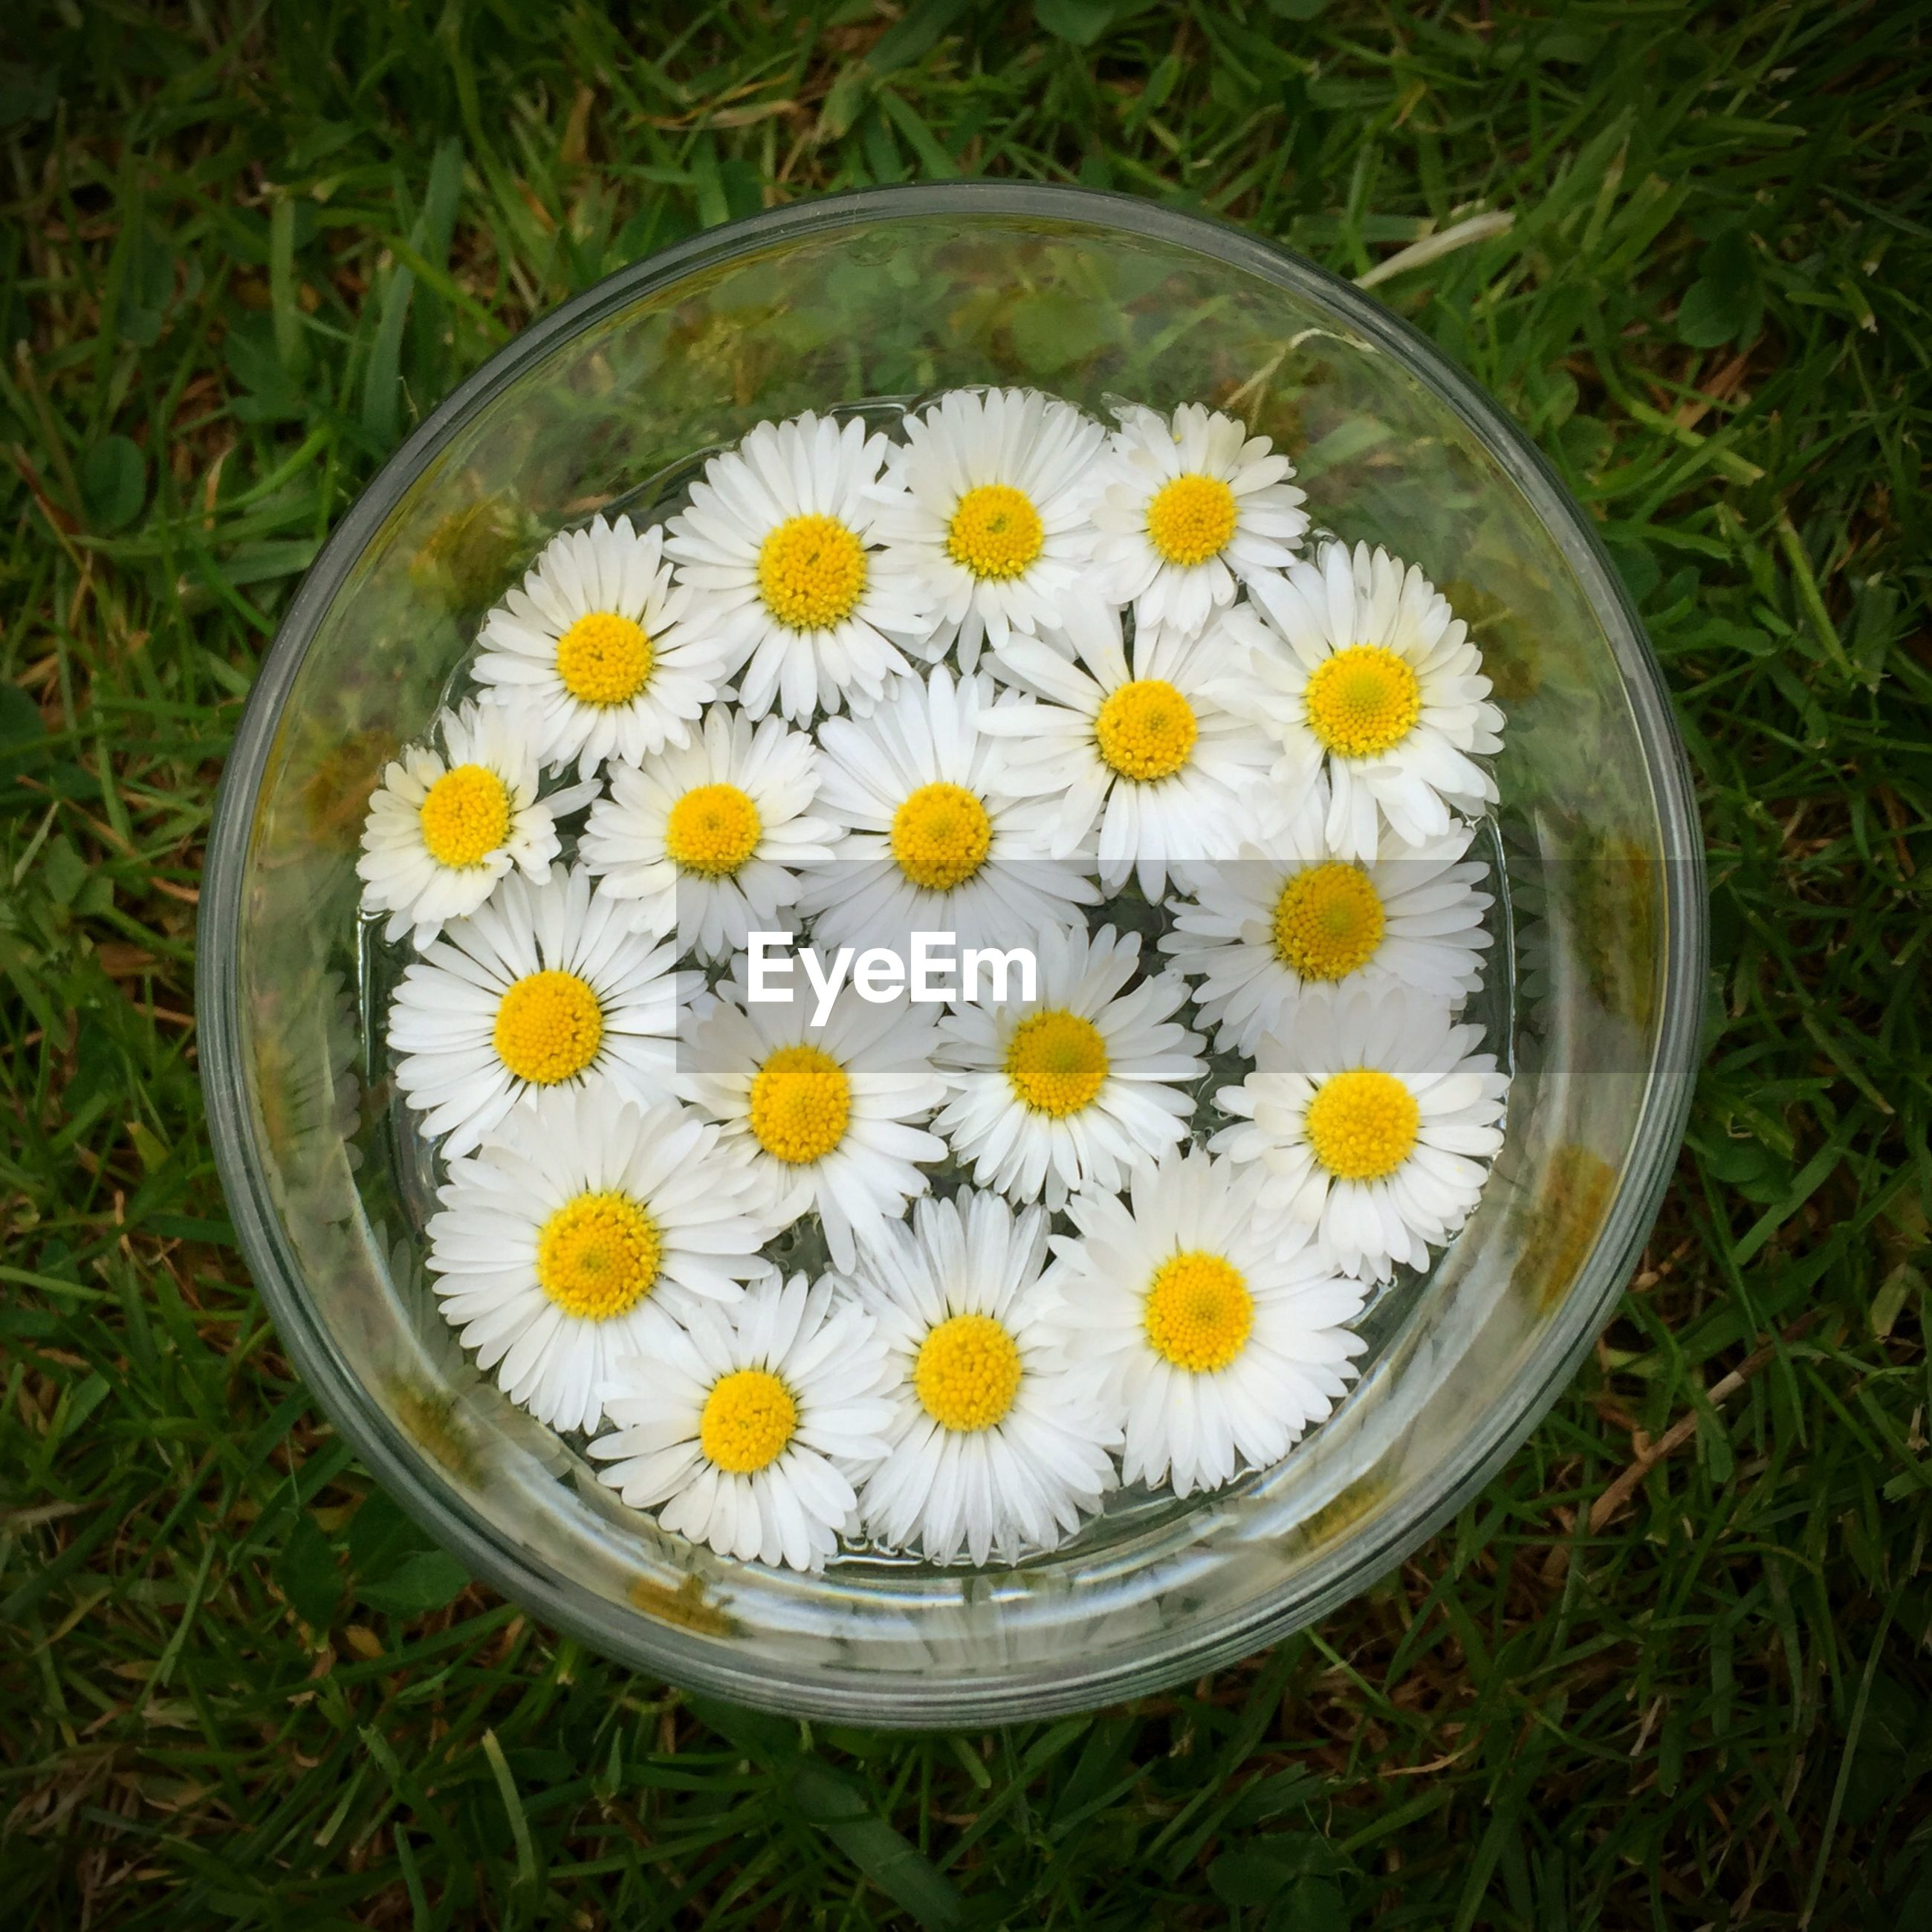 Directly above shot of daisy flowers in bowl